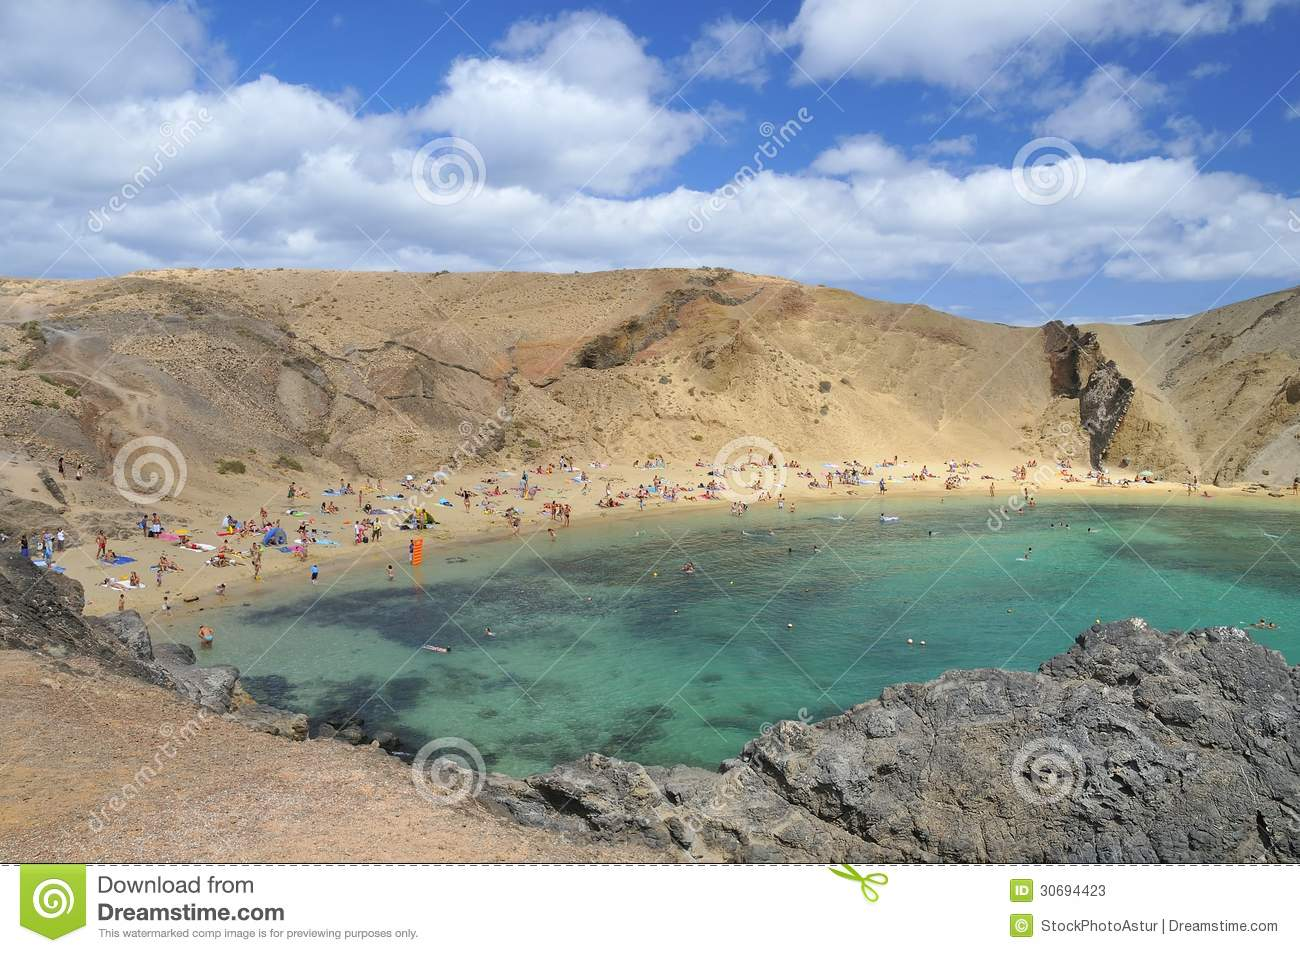 papagayo beach in lanzarote stock image image of natural canary 30694423. Black Bedroom Furniture Sets. Home Design Ideas